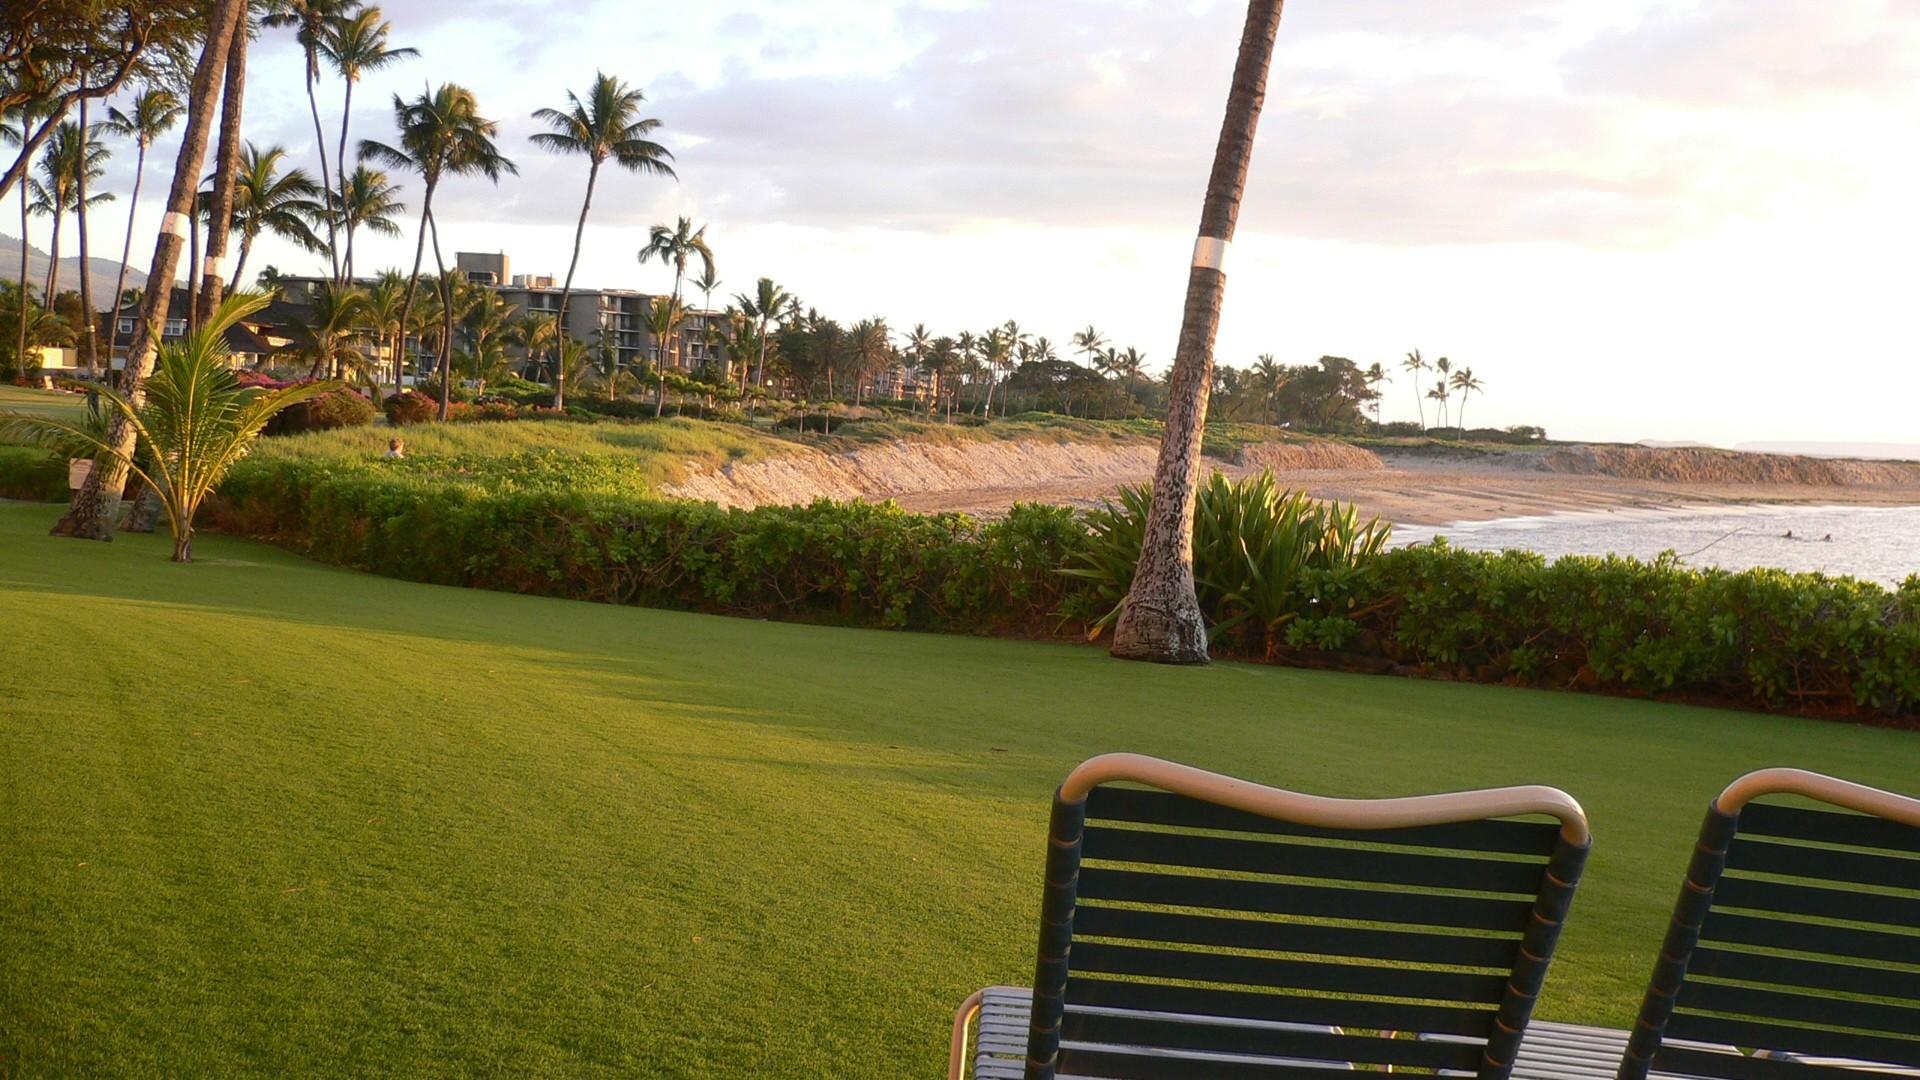 View of the beach from the manicured grounds.